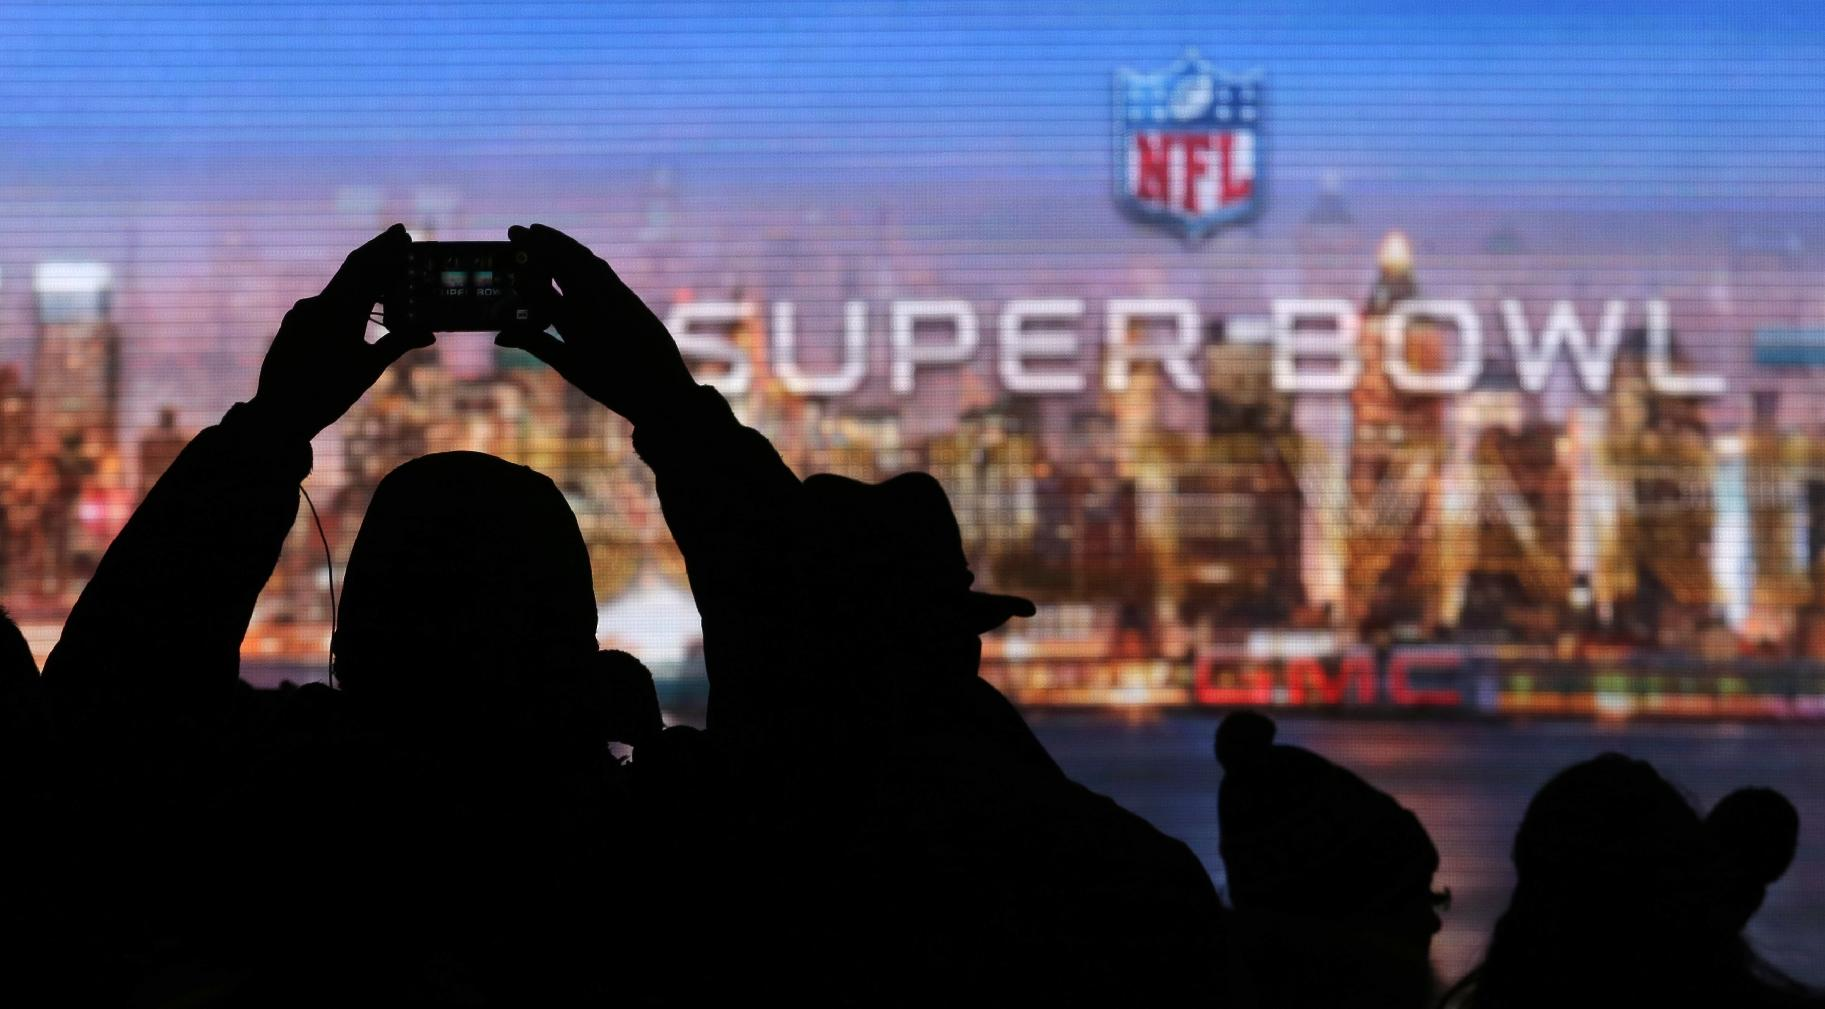 Fans take photos of the Roman numerals for Super Bowl XLVIII on Super Bowl Boulevard Wednesday, Jan. 29, 2014, in New York. The Seattle Seahawks are scheduled to play the Denver Broncos in the NFL Super Bowl XLVIII football game on Sunday, Feb. 2, in East Rutherford, N.J